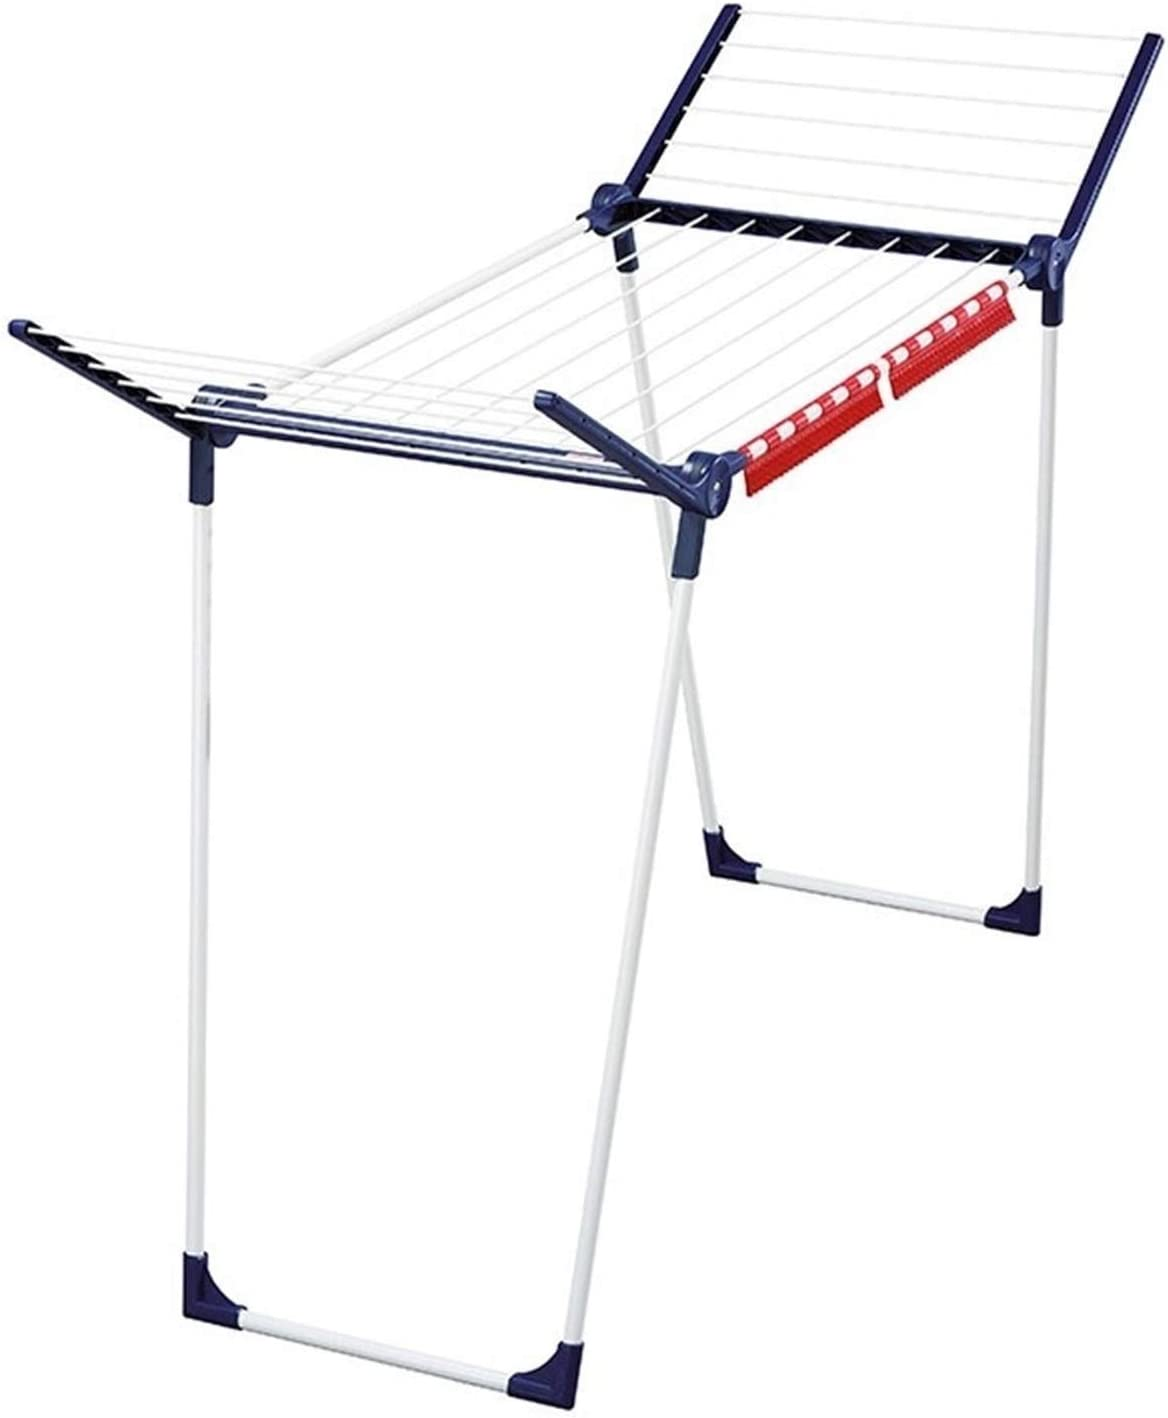 XIAOQIU Clothes Superior Drying Rack for Household Max 47% OFF Fl Laundry